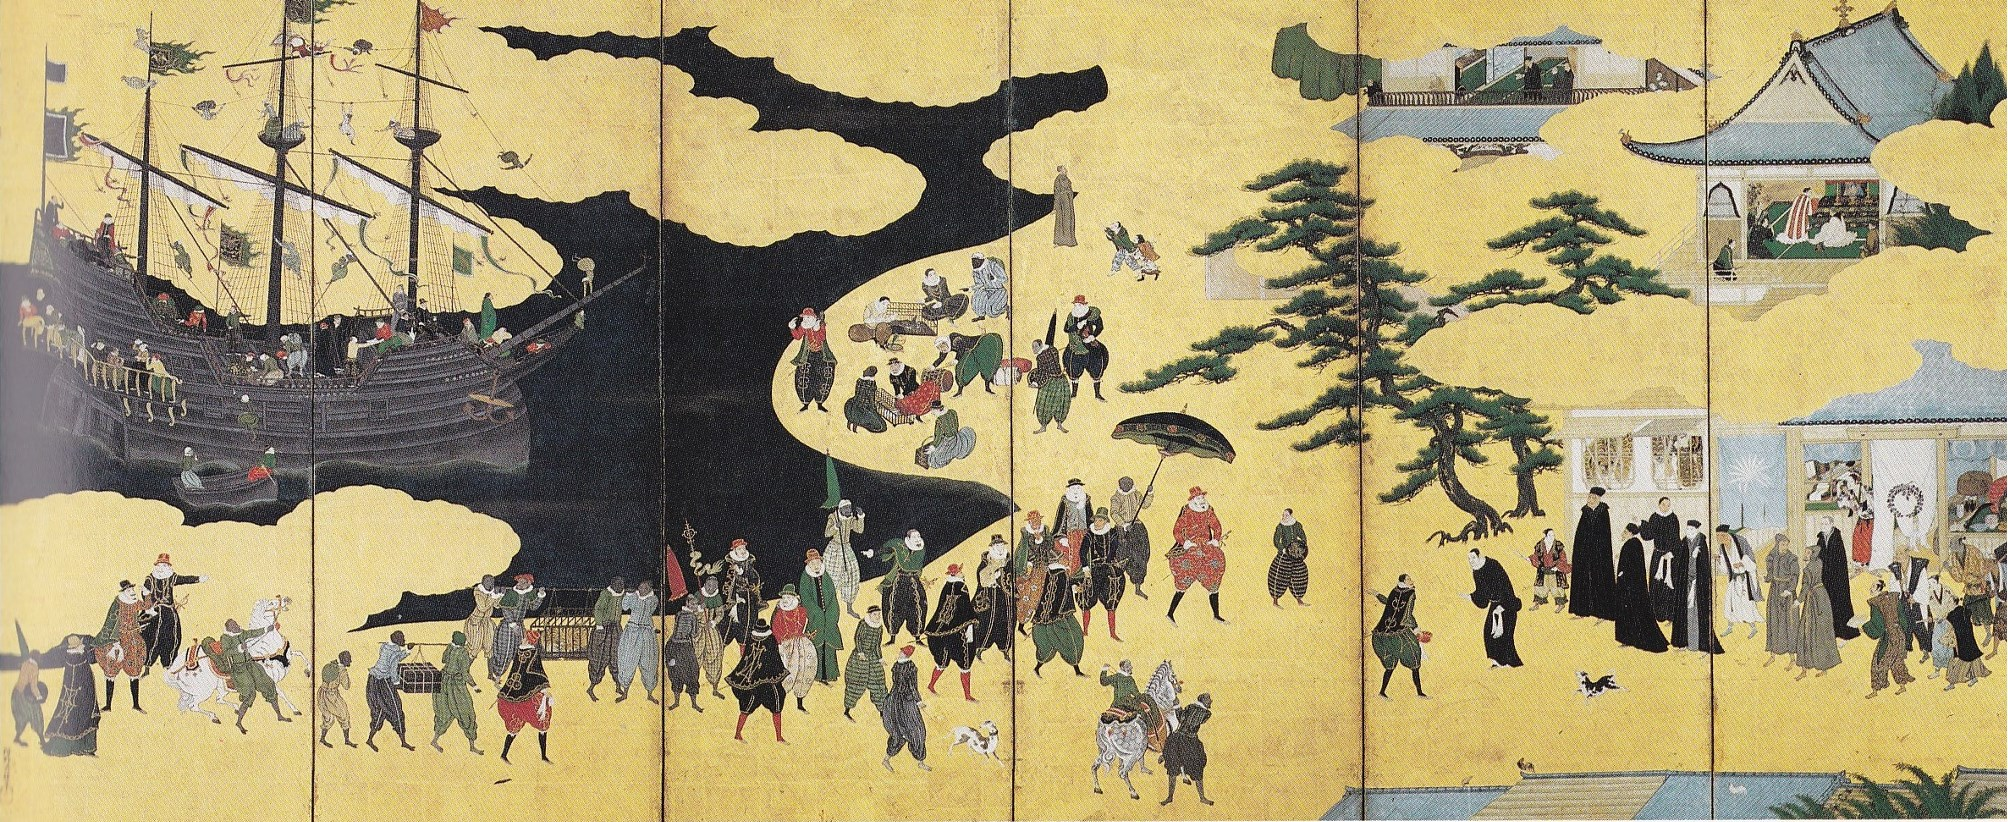 history of japan and its relationship with the world Start studying japan: world history learn vocabulary, terms and more with flashcards, games and other military leader of japan during the middle ages used to be a temporary title, but now is a qa1 landowners became powerful and japan formed its own feudal system 2 rice tax 3 noble.